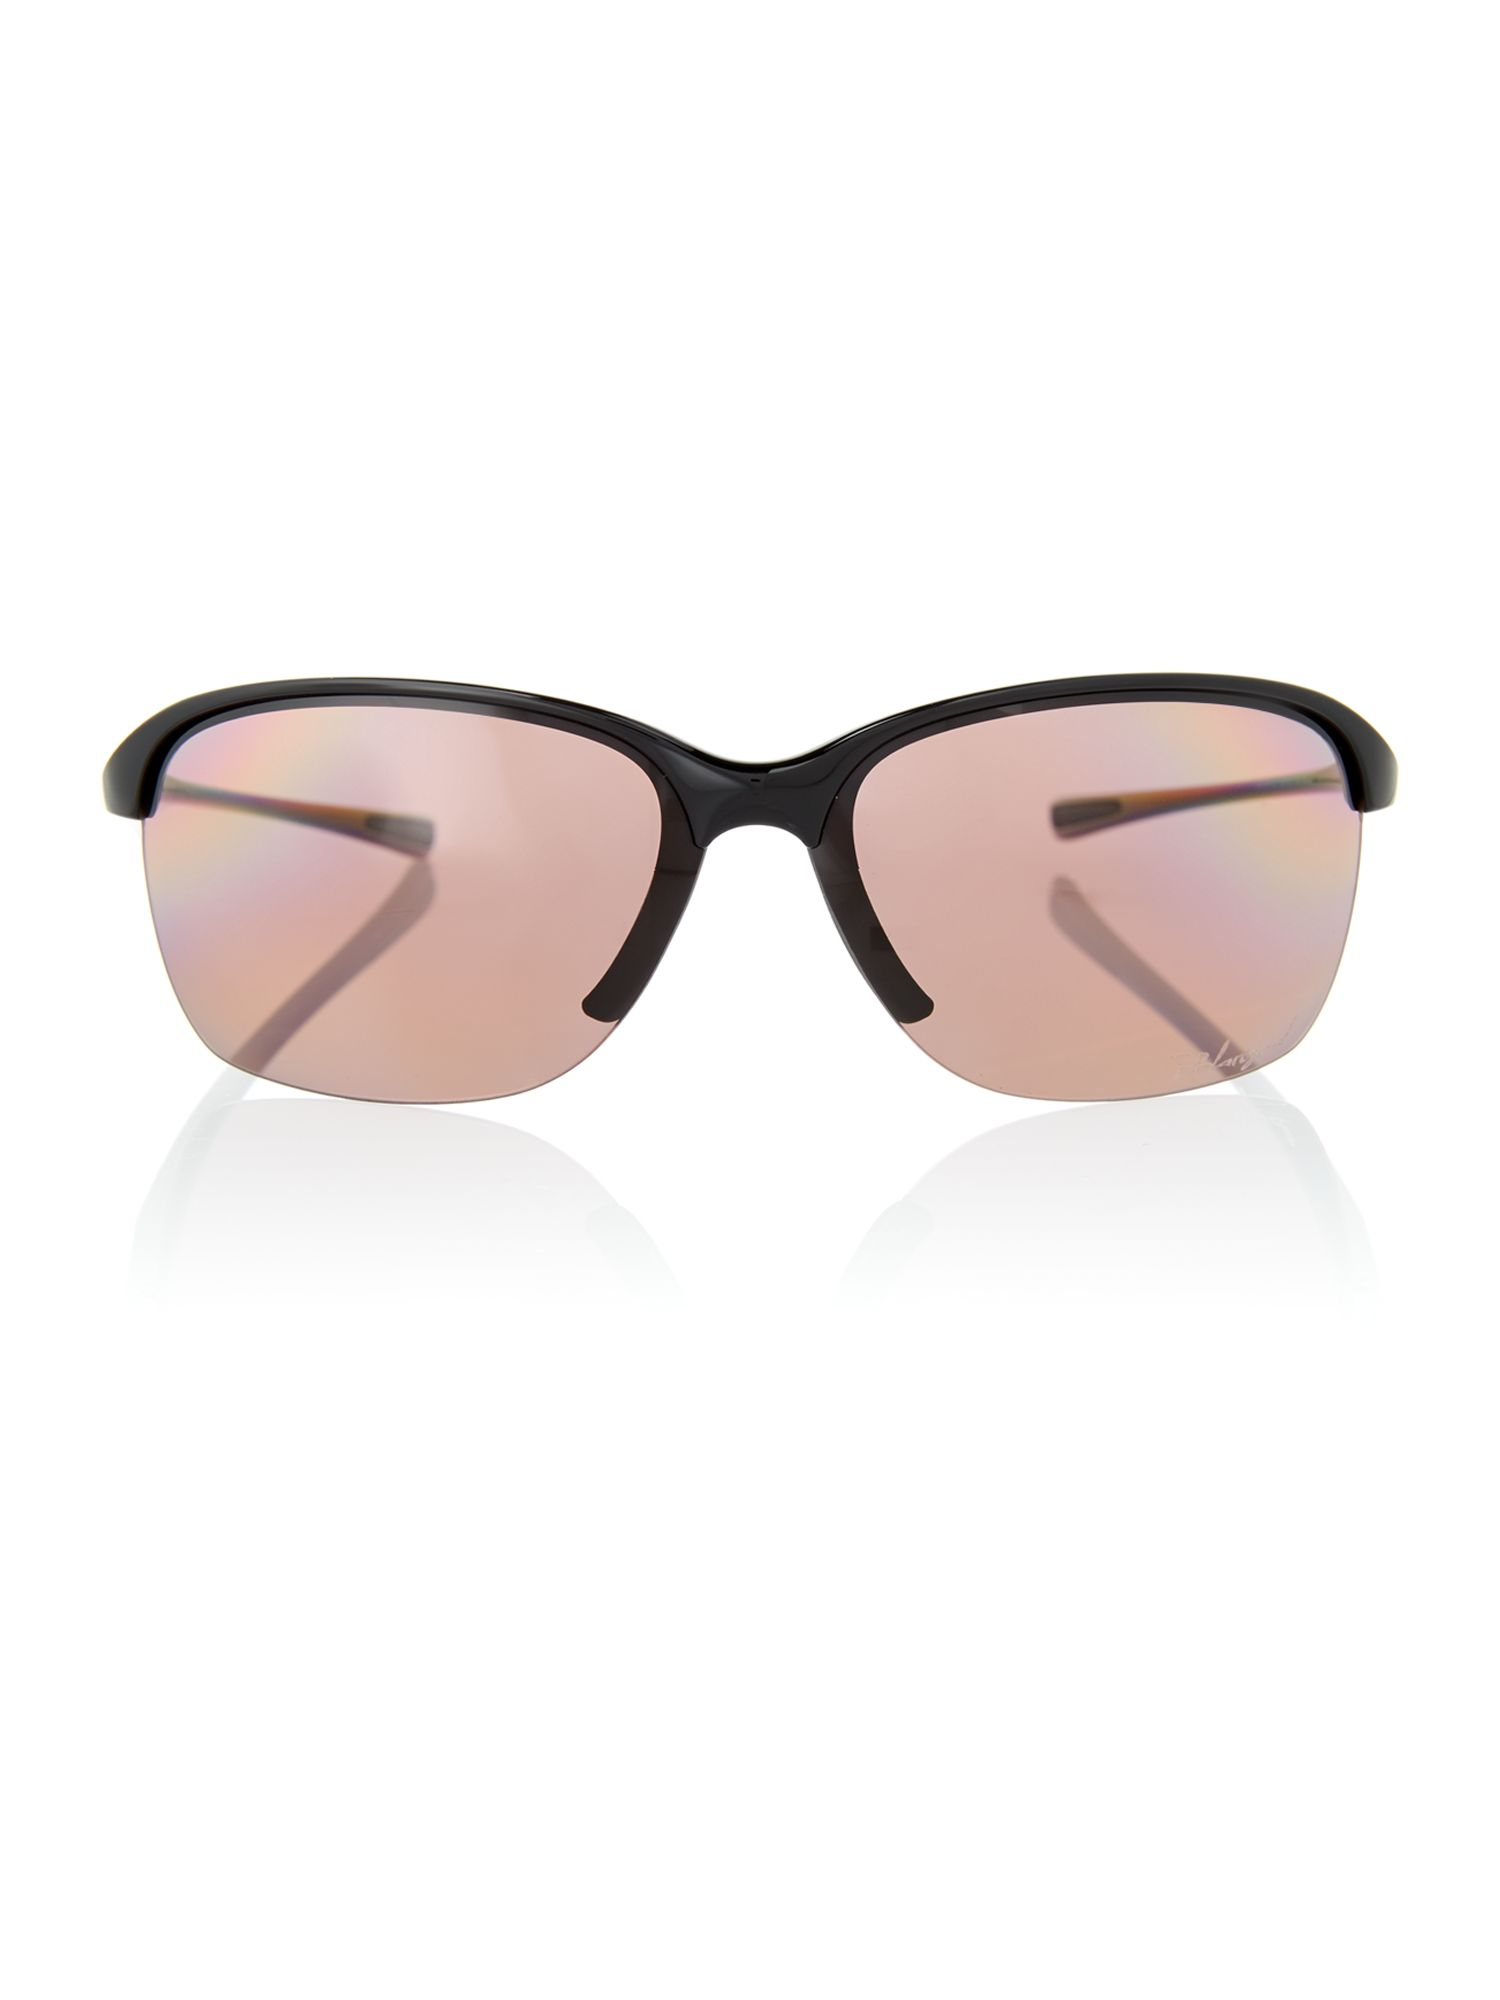 Ladies 0oo9191 sunglasses